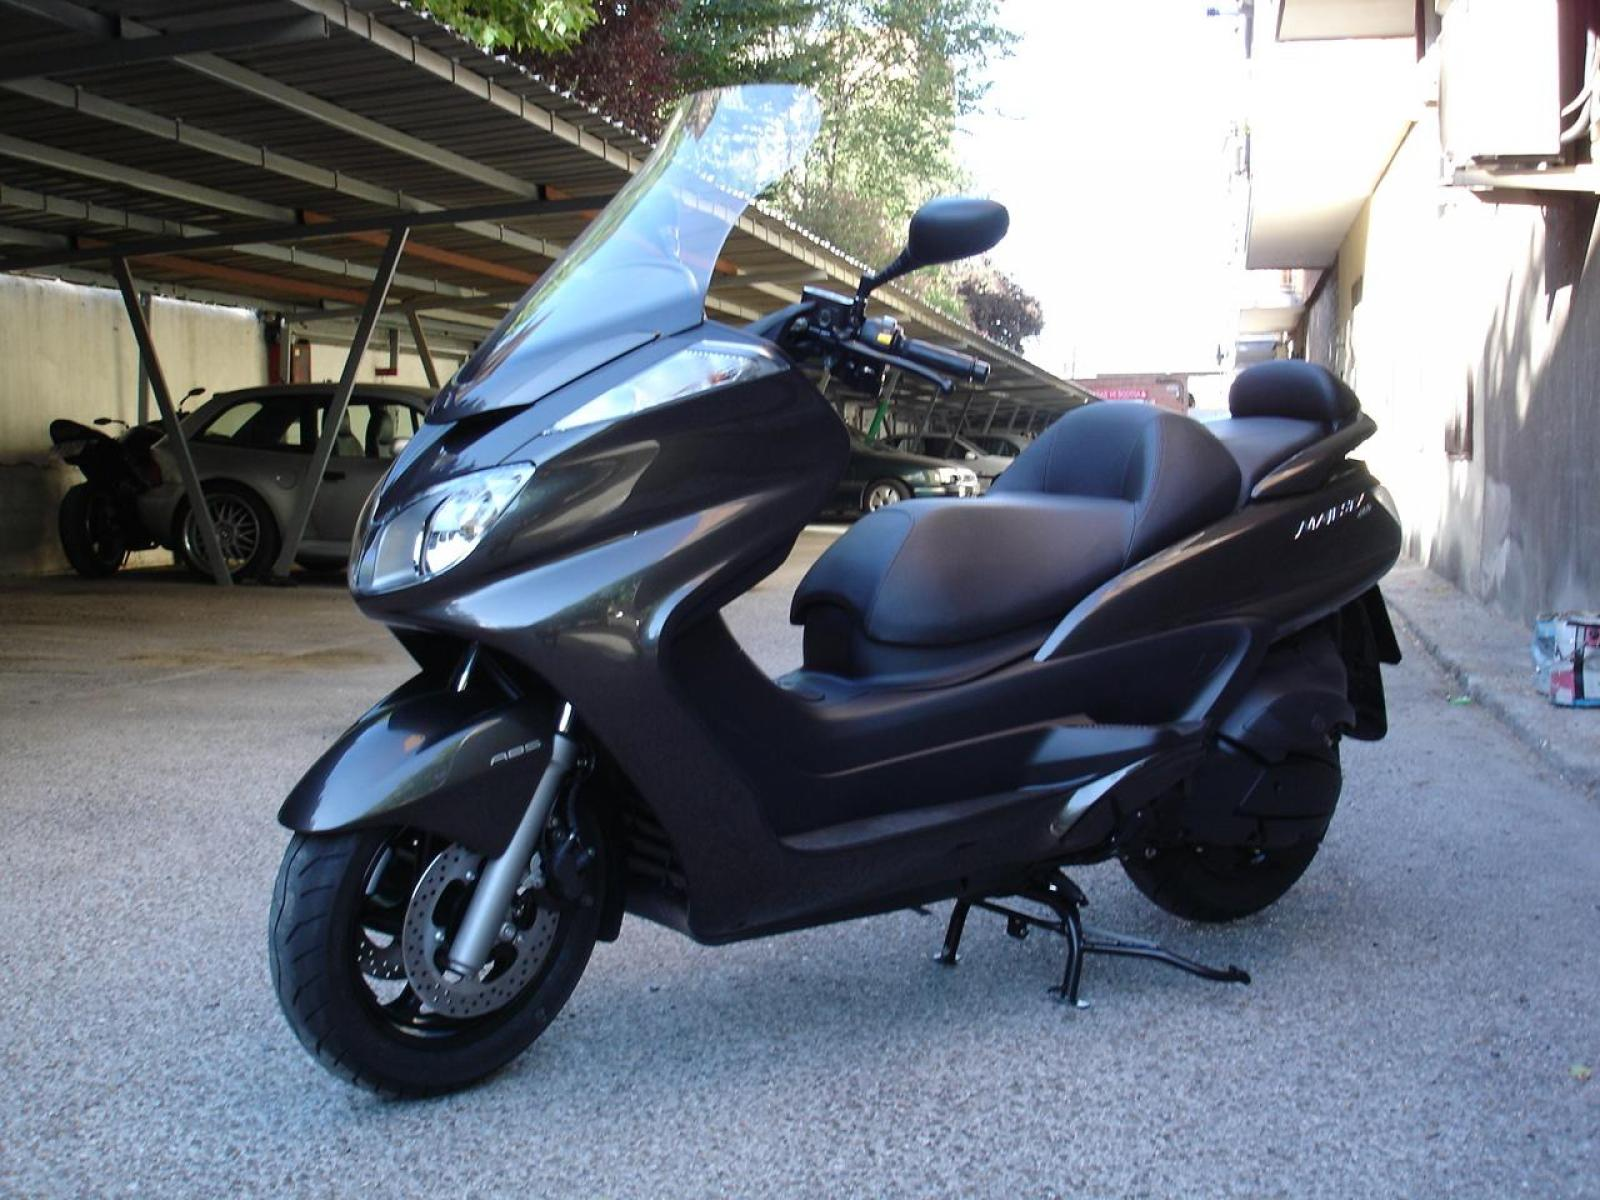 2008 yamaha majesty 400 abs moto zombdrive com. Black Bedroom Furniture Sets. Home Design Ideas